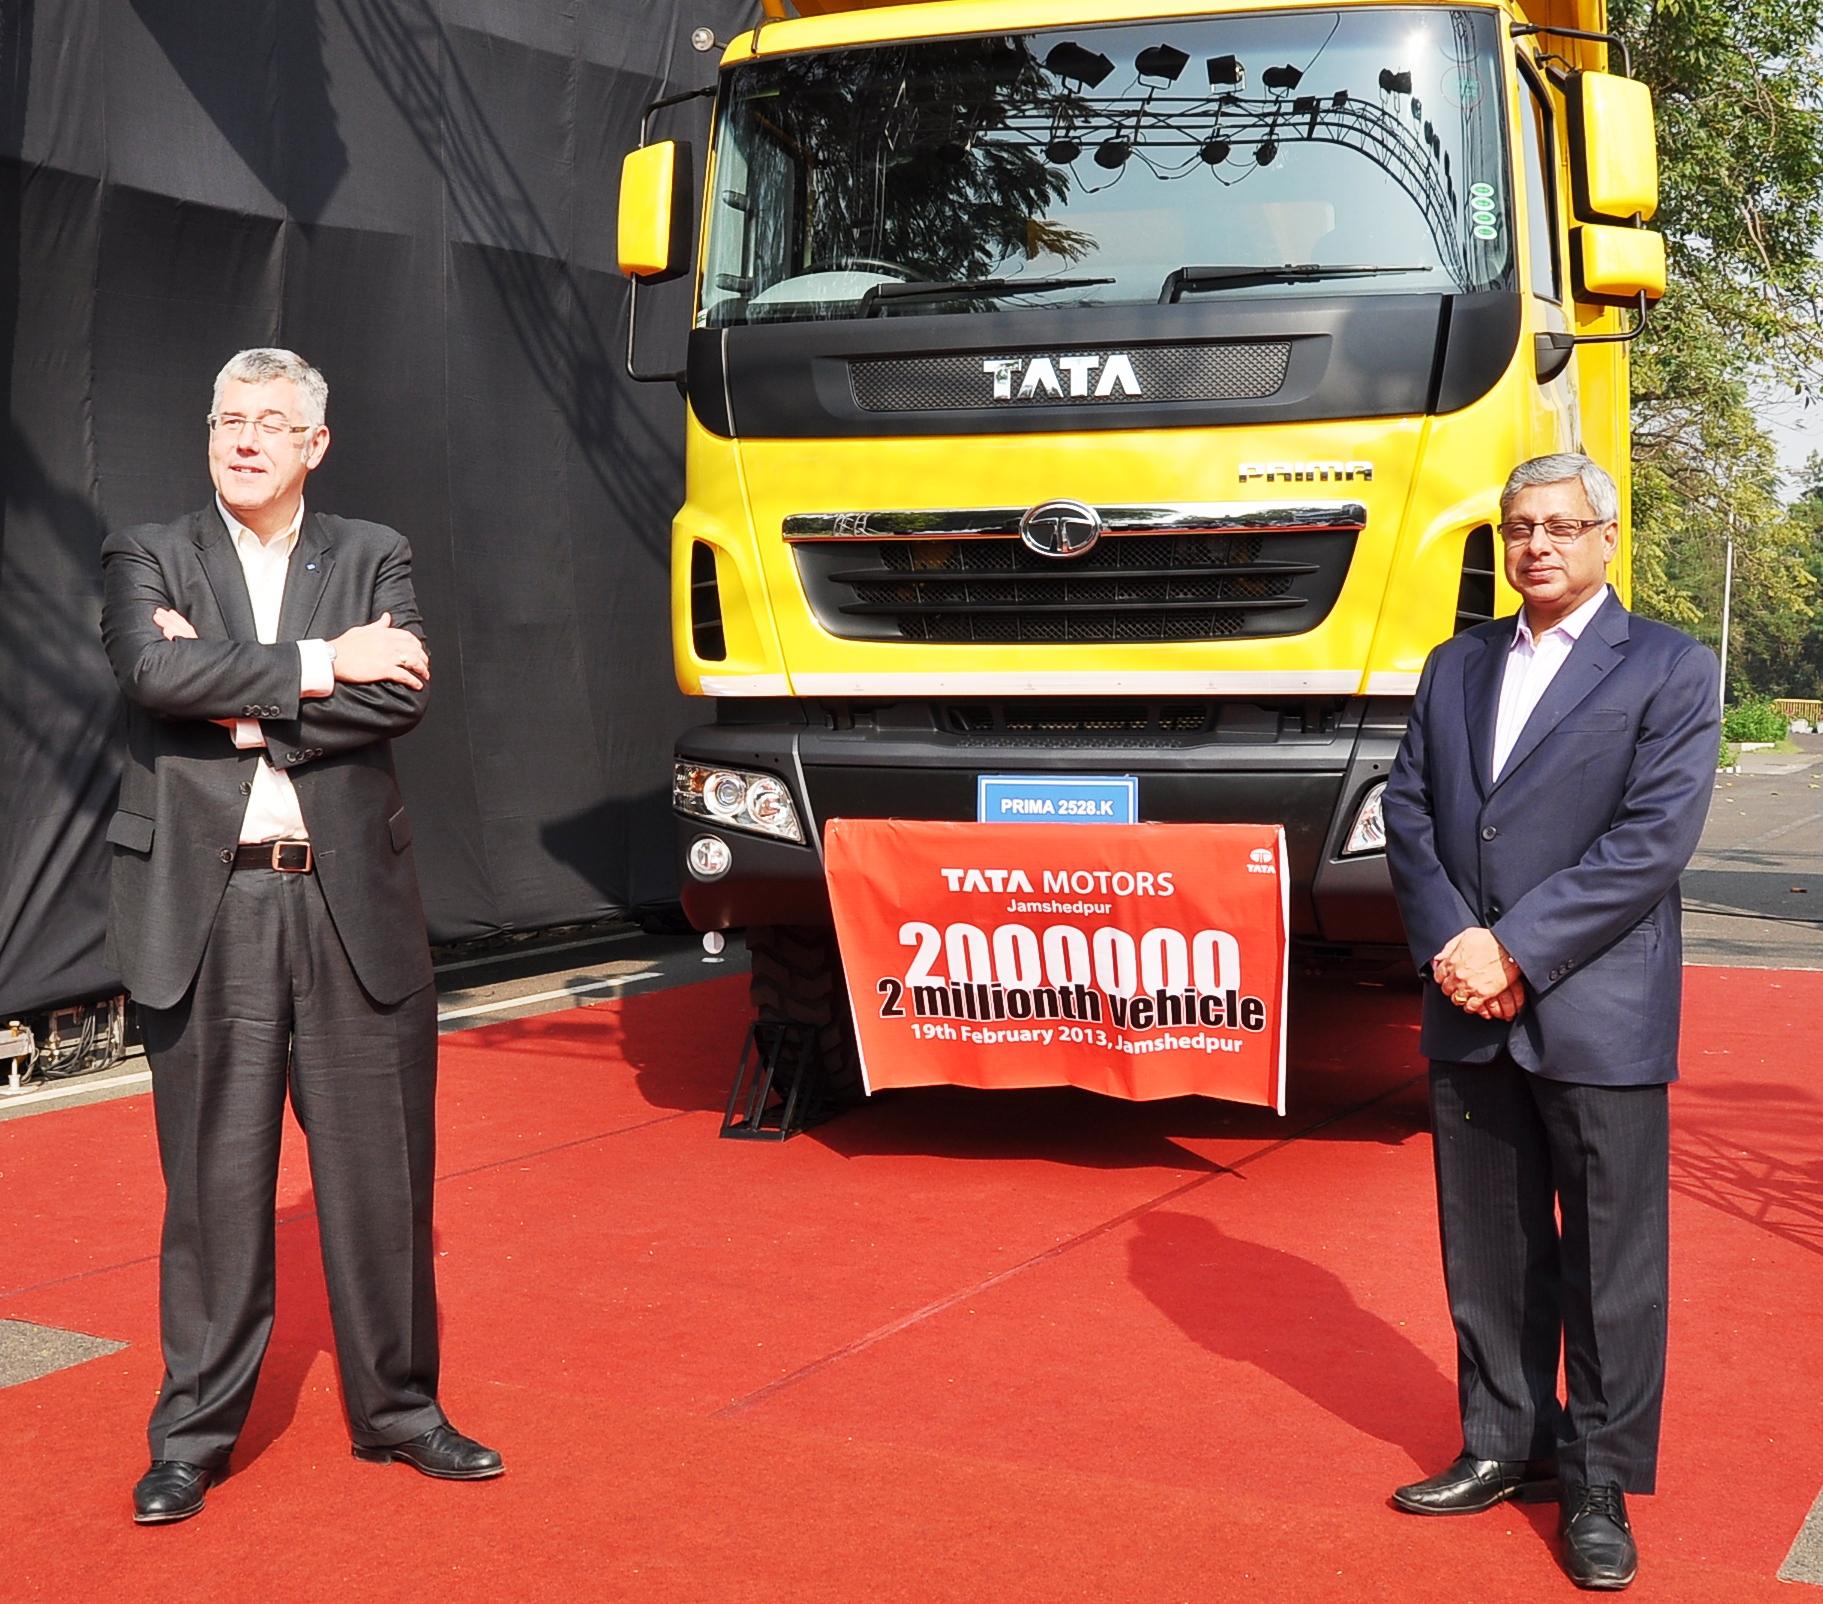 Tata's-Two-Millionth-Truck